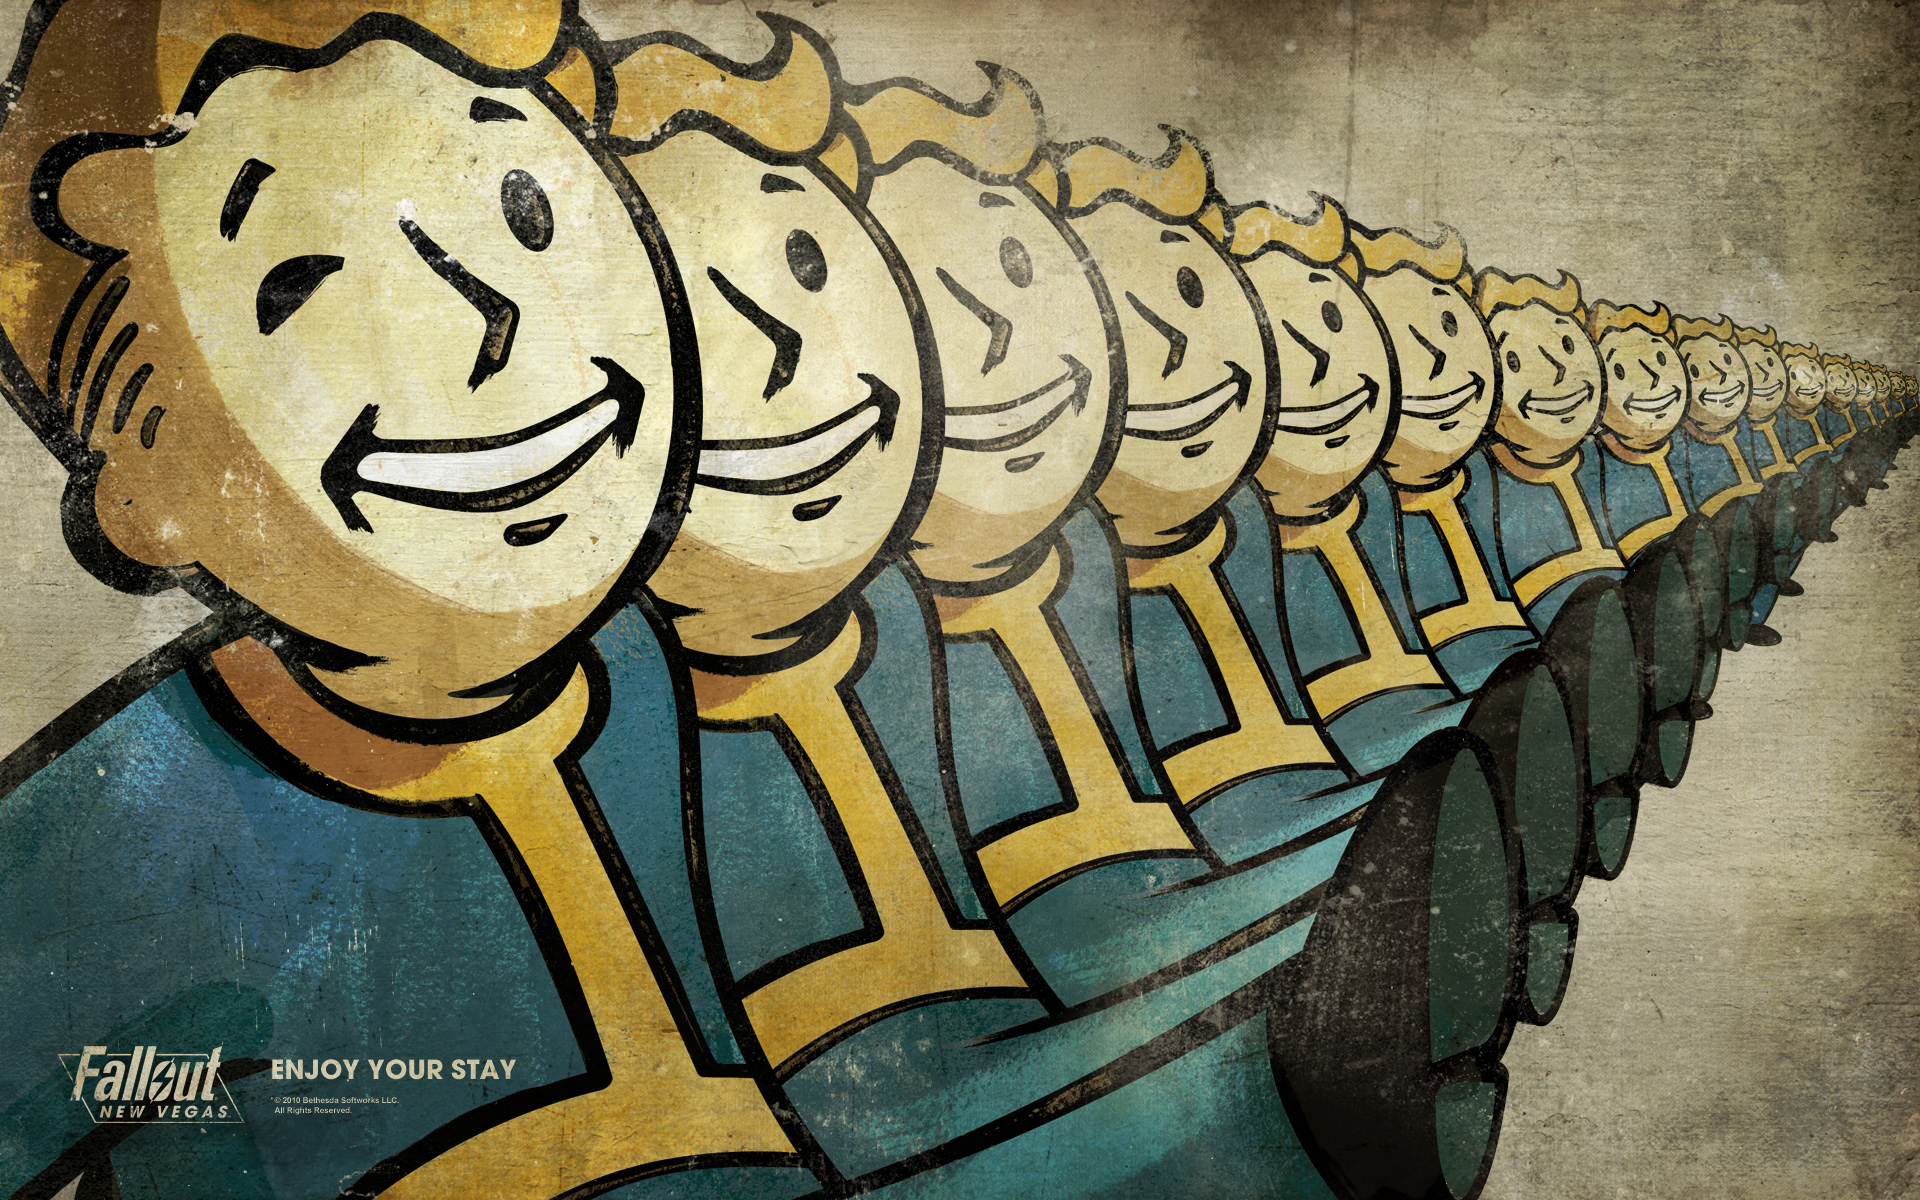 fallout-new-vegas-wallpaper-5-pipboy-march